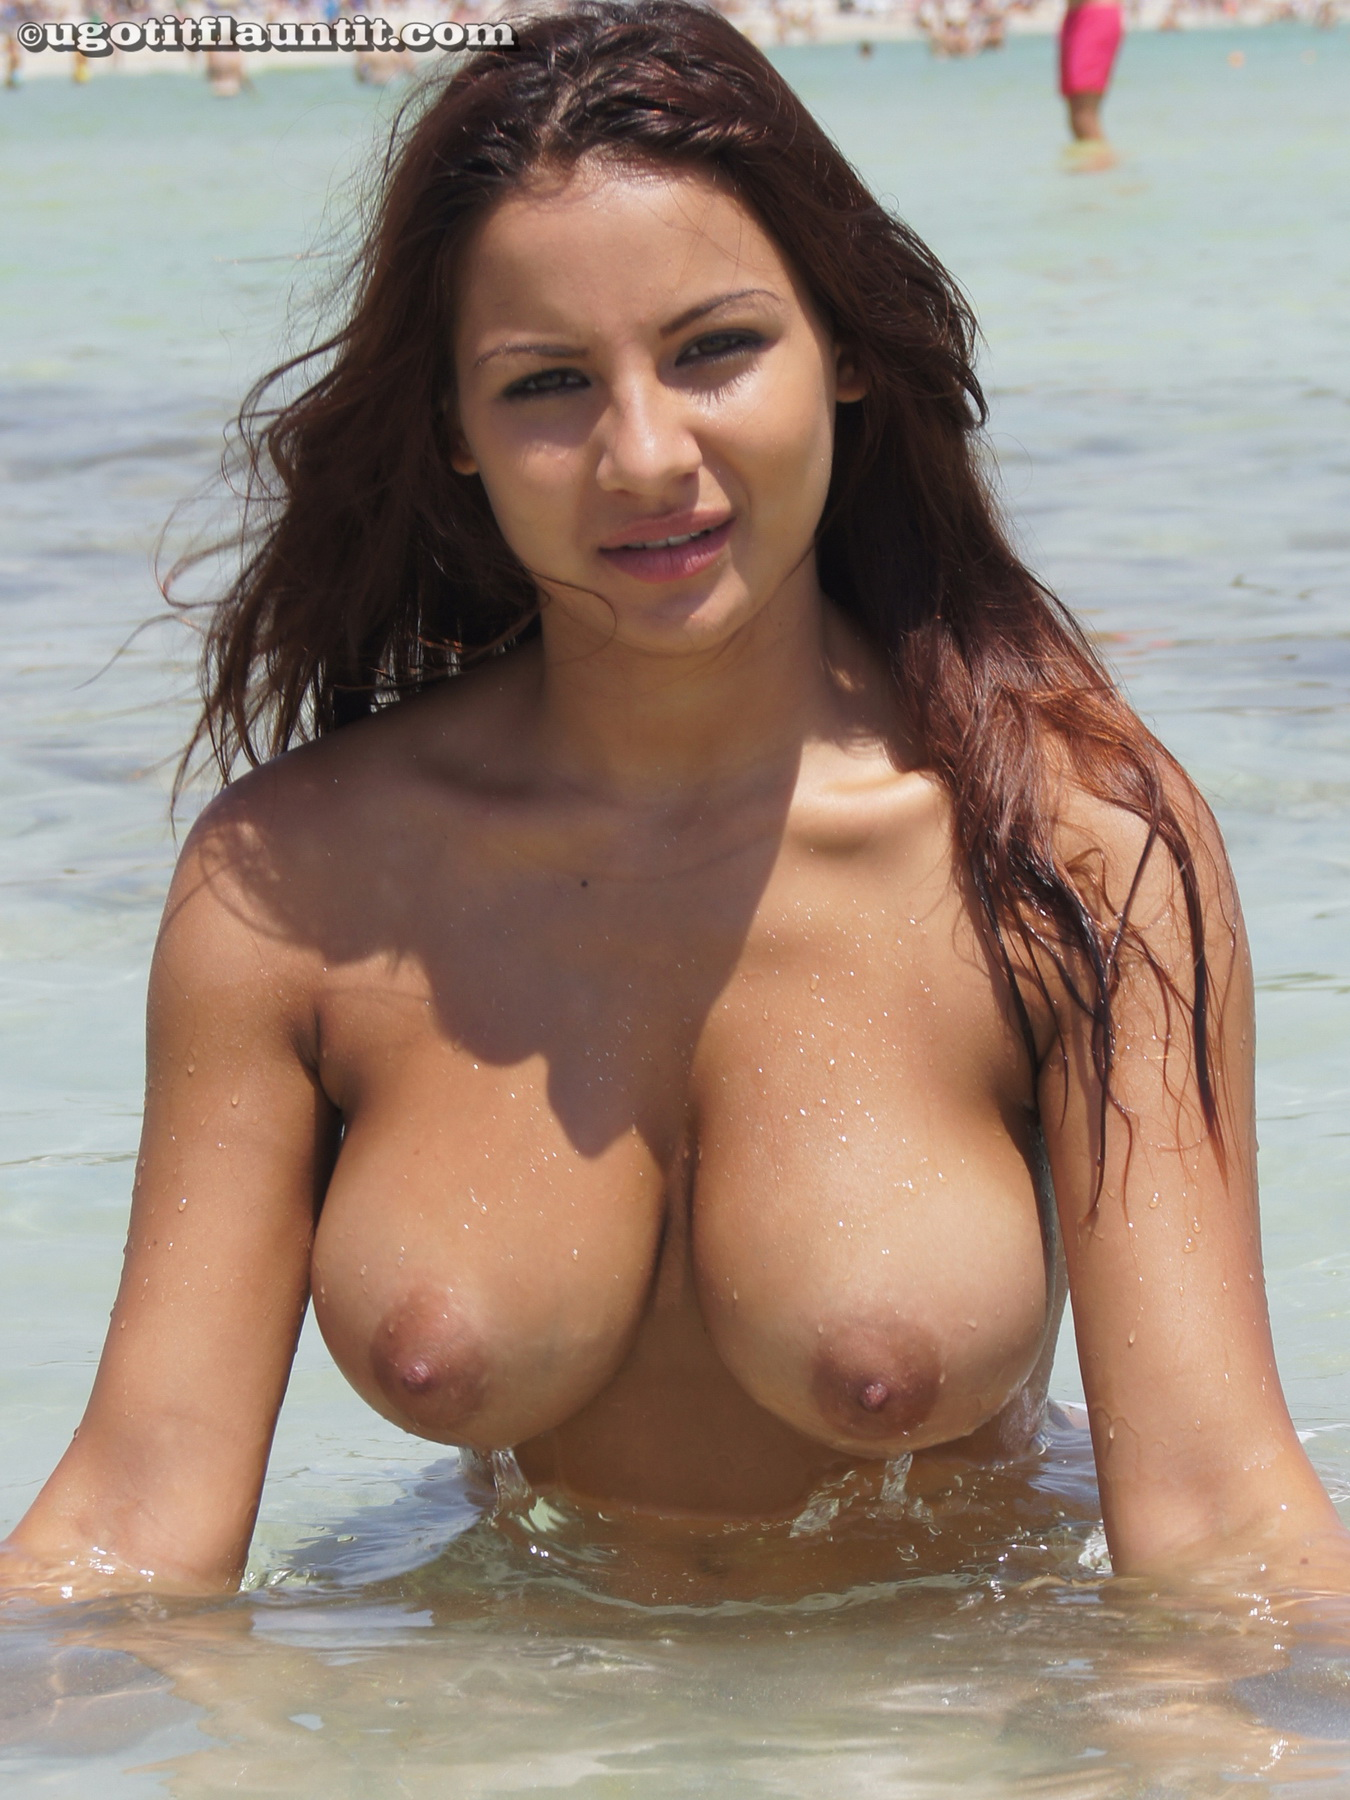 Big Boobs On Sexy Topless Amateur Beach Babe  Nude -8968